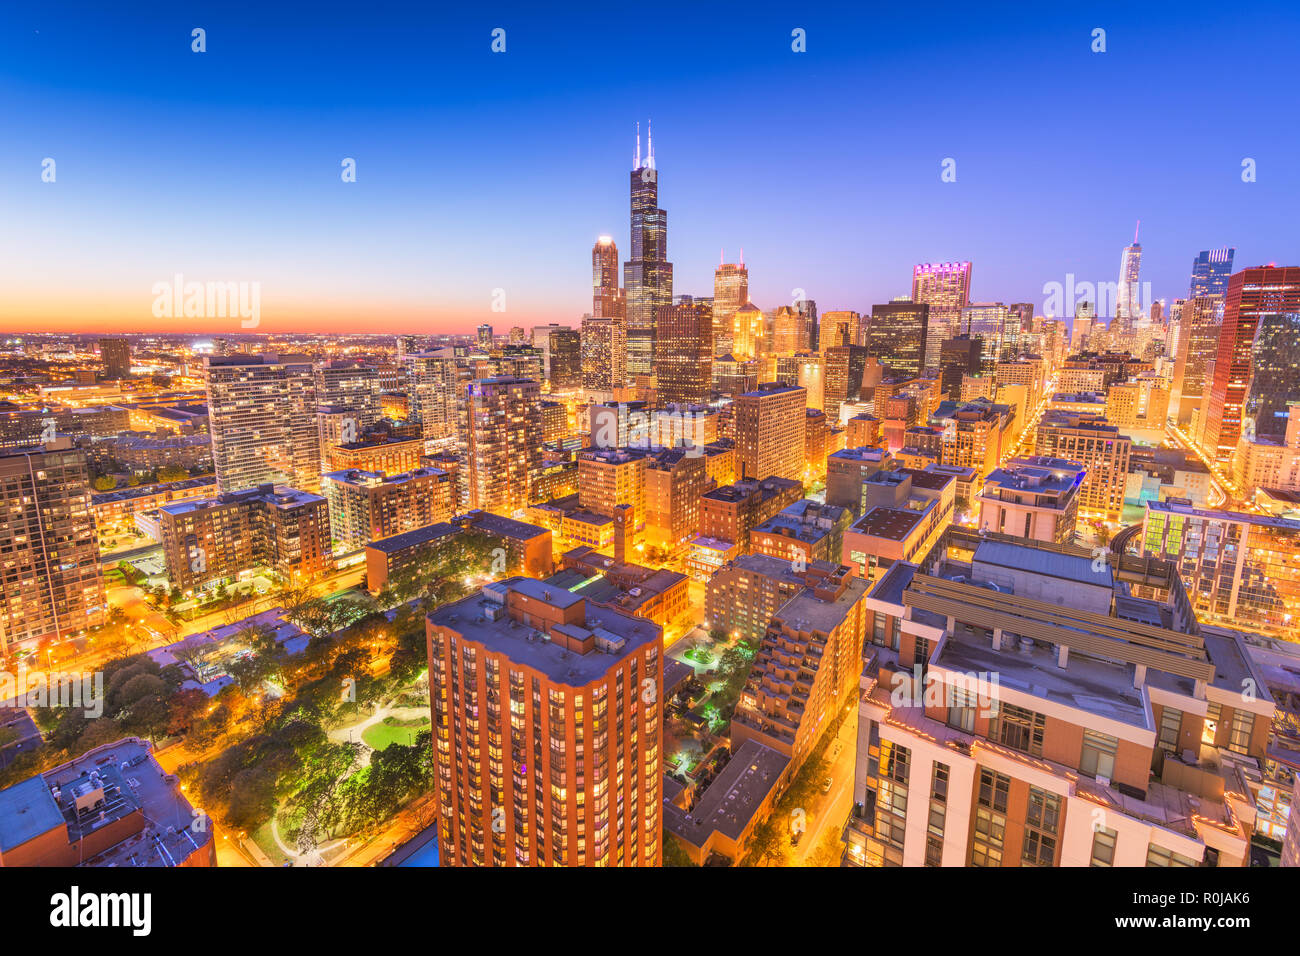 Chicago, Illinois, USA downtown city skyline from above at dusk. - Stock Image